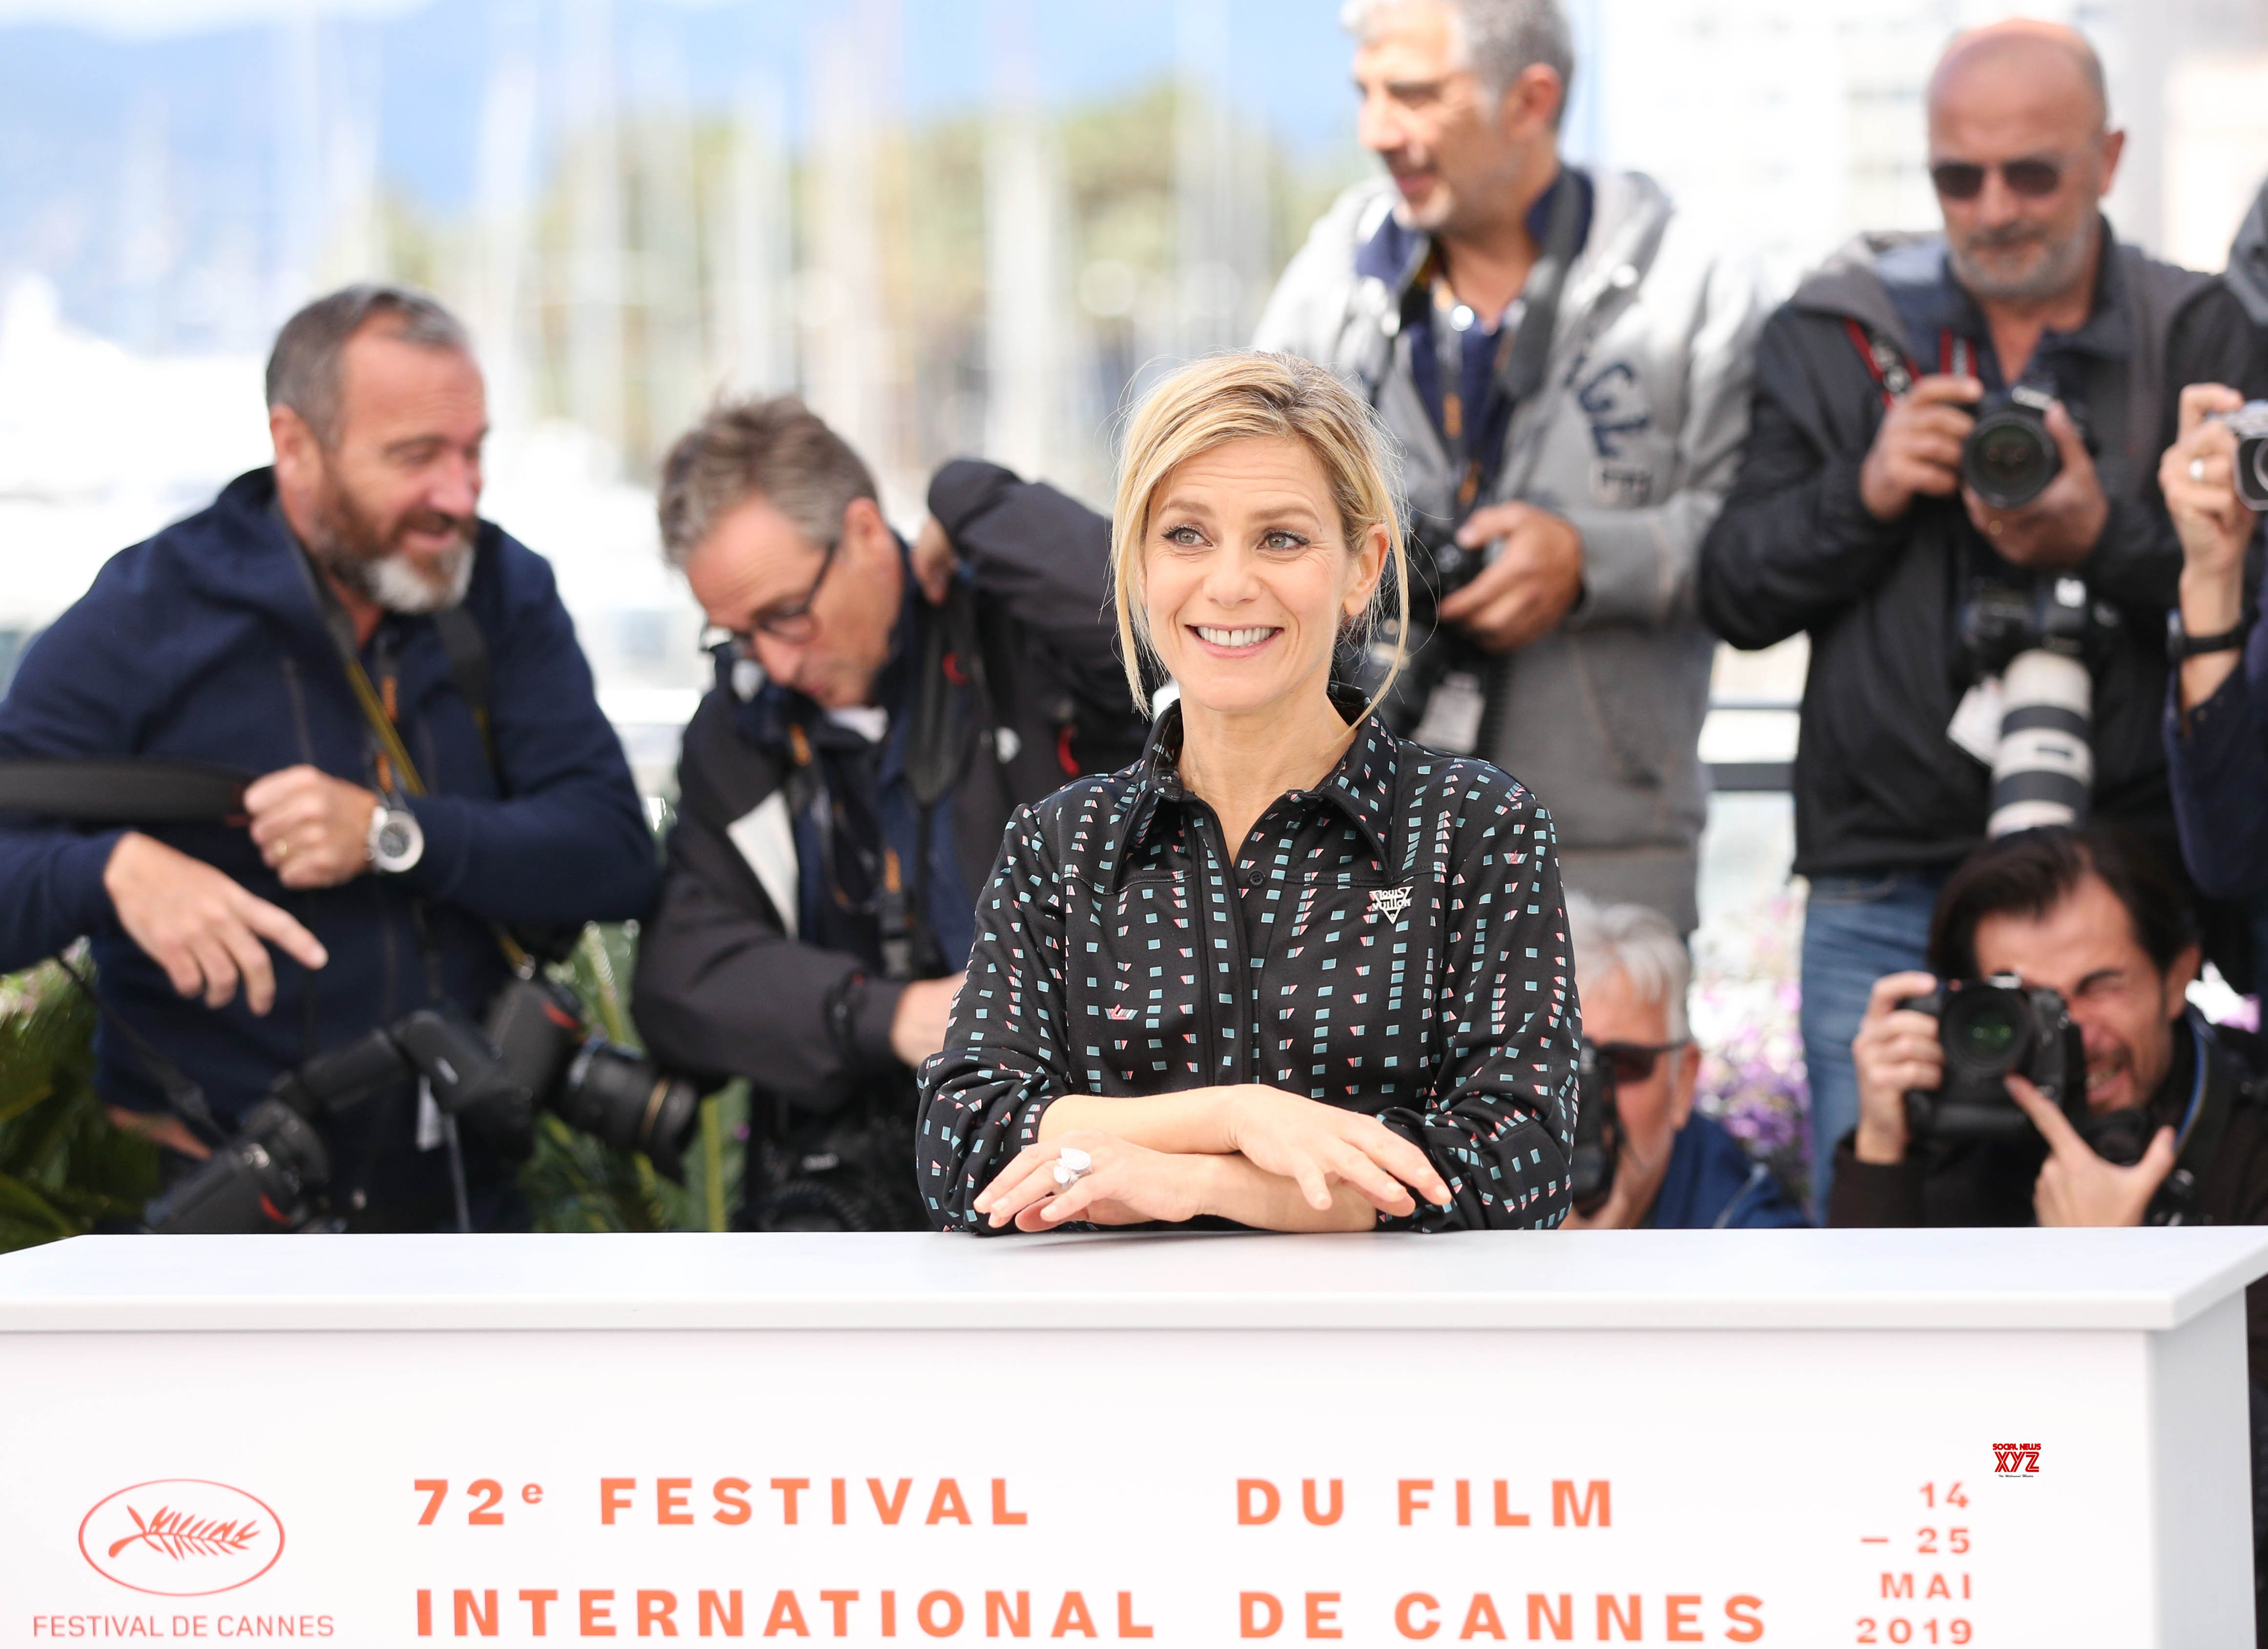 FRANCE - CANNES - FILM FESTIVAL - UN CERTAIN REGARD - JURY MEMBERS - PHOTO CALL #Gallery